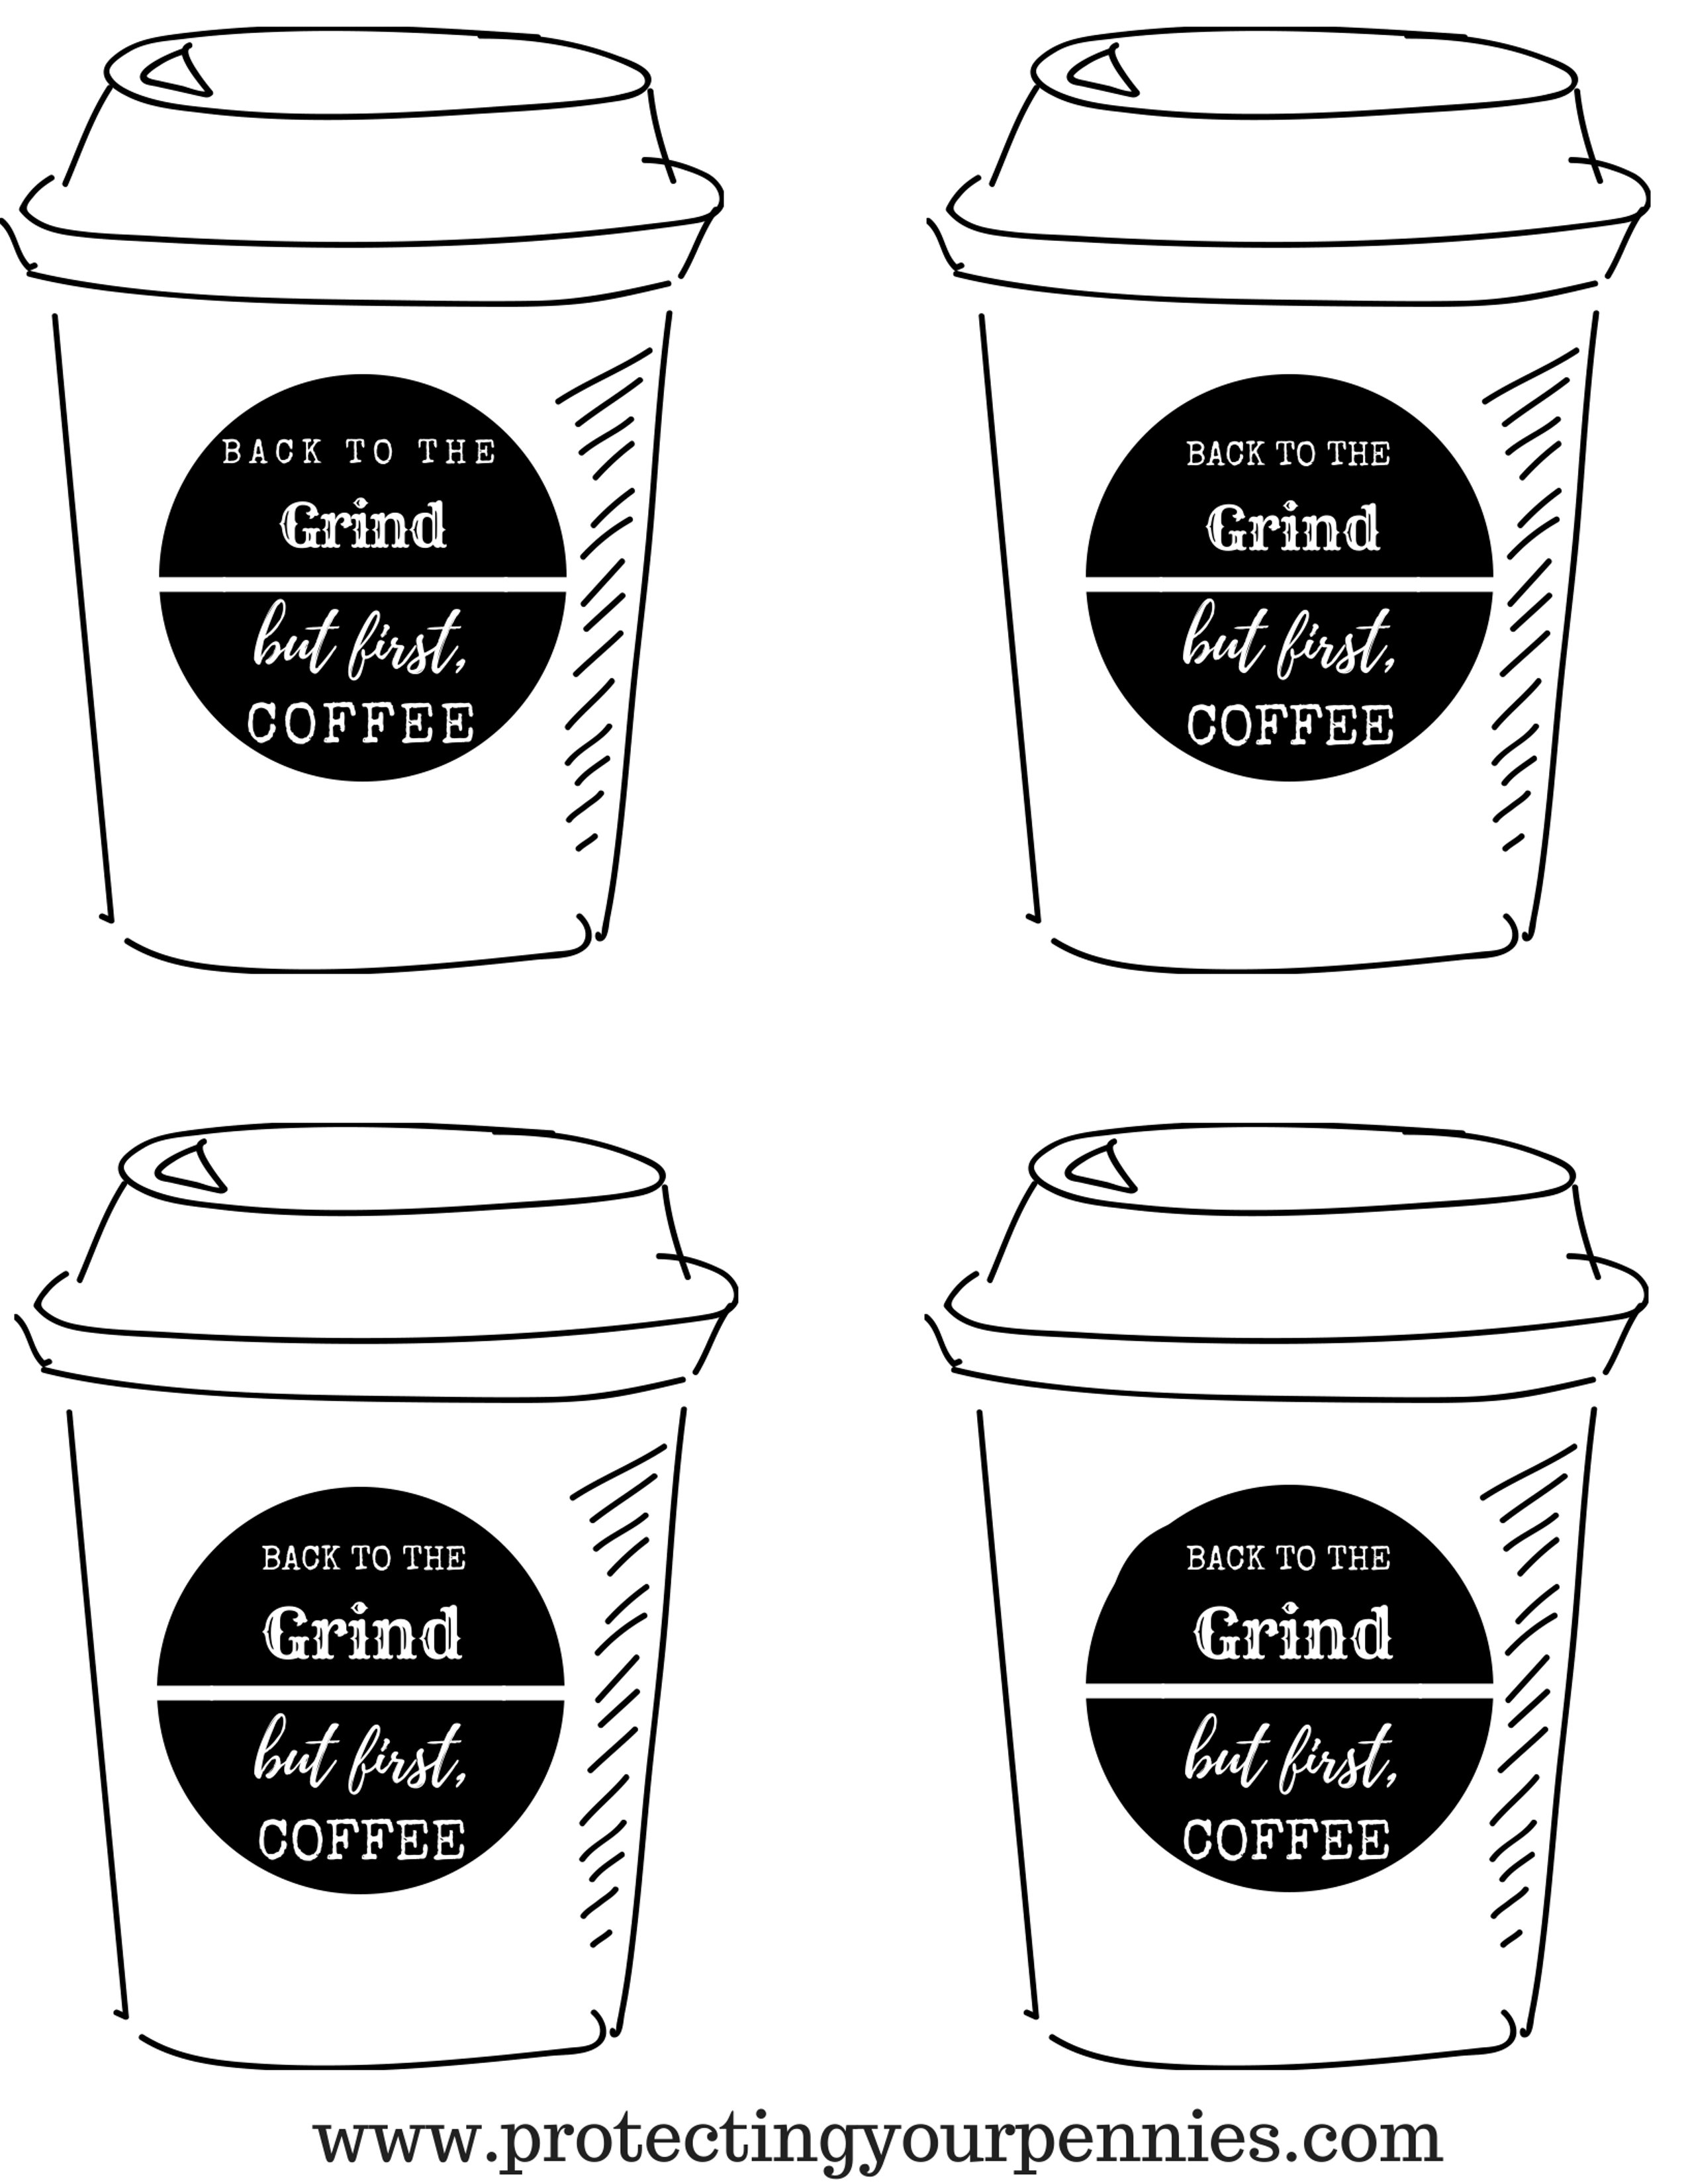 image regarding But First Coffee Free Printable called Back again Toward The Grind Trainer Reward With Cost-free Printable